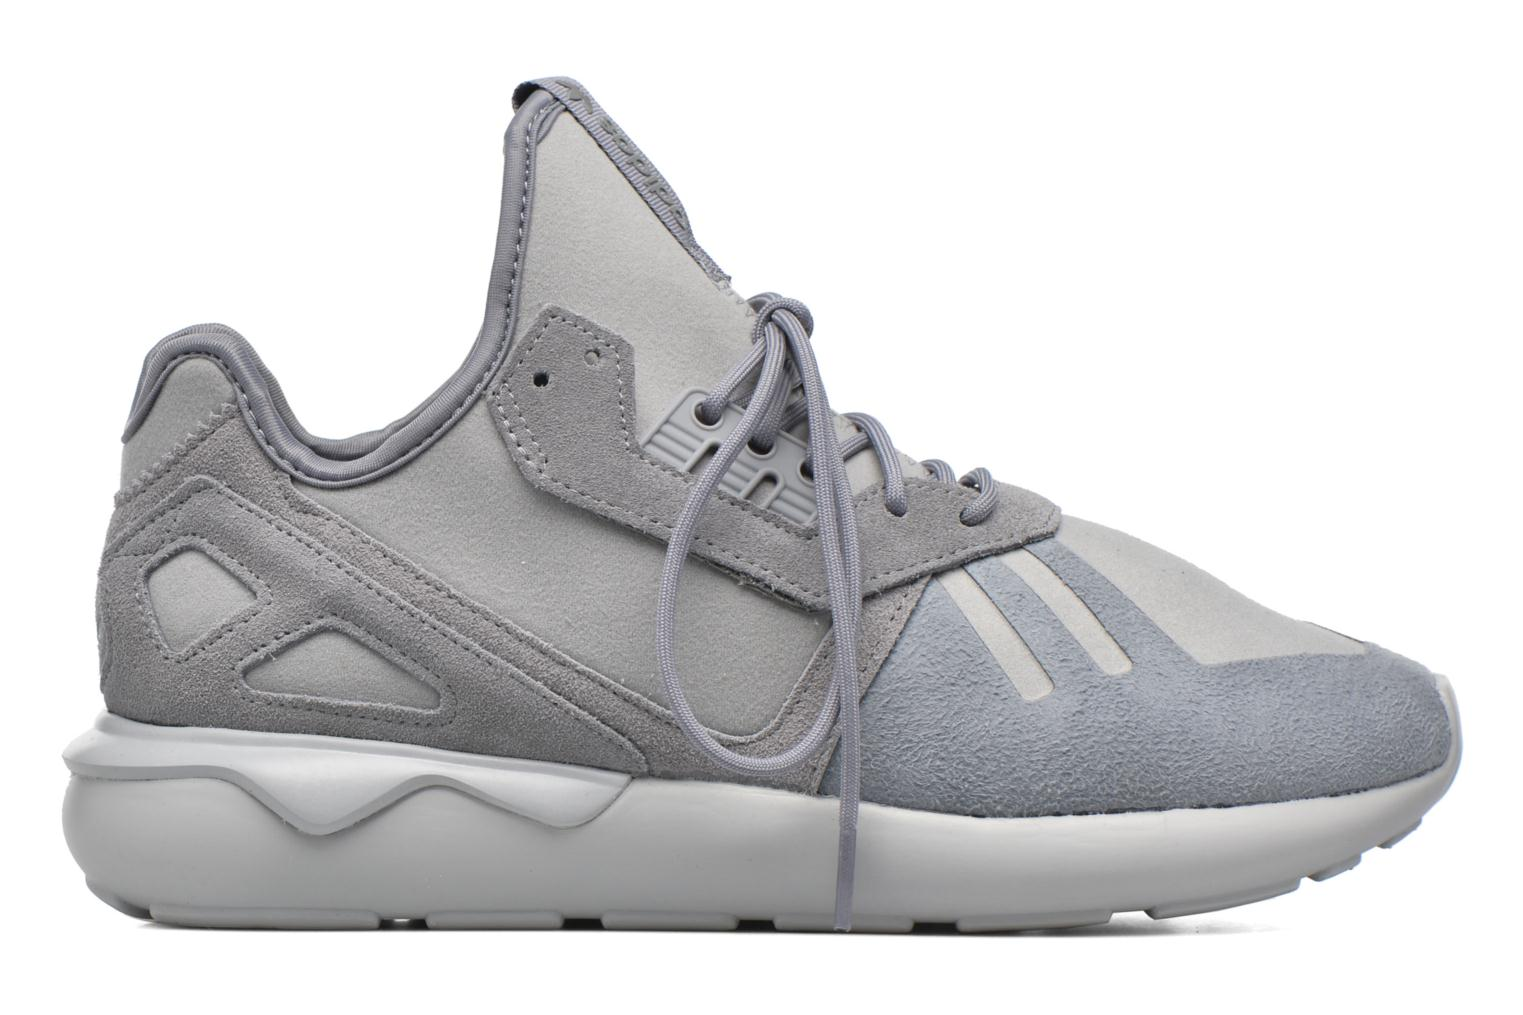 Baskets Adidas Originals Tubular Runner Gris vue derrière